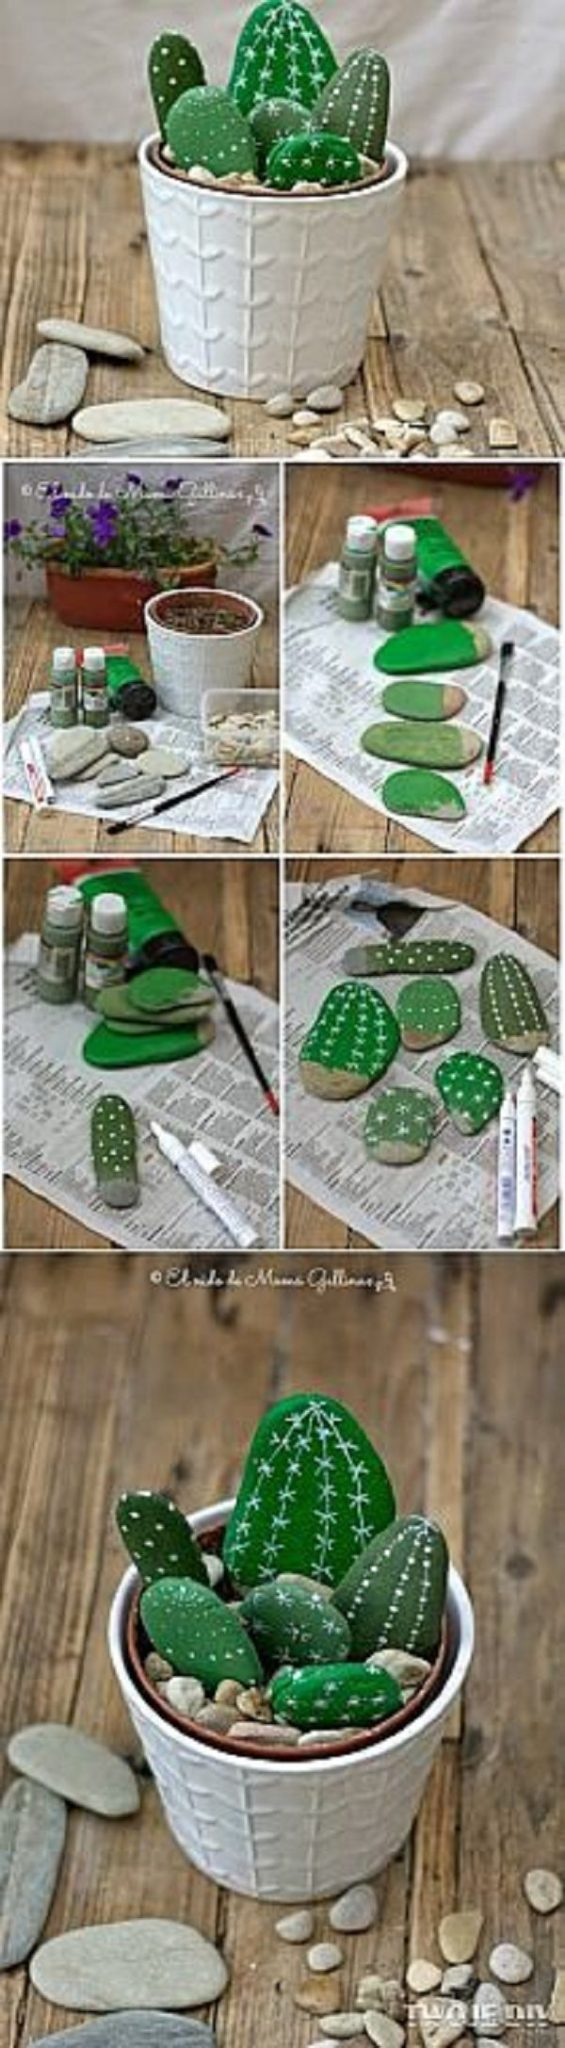 cactus-from-river-stones1